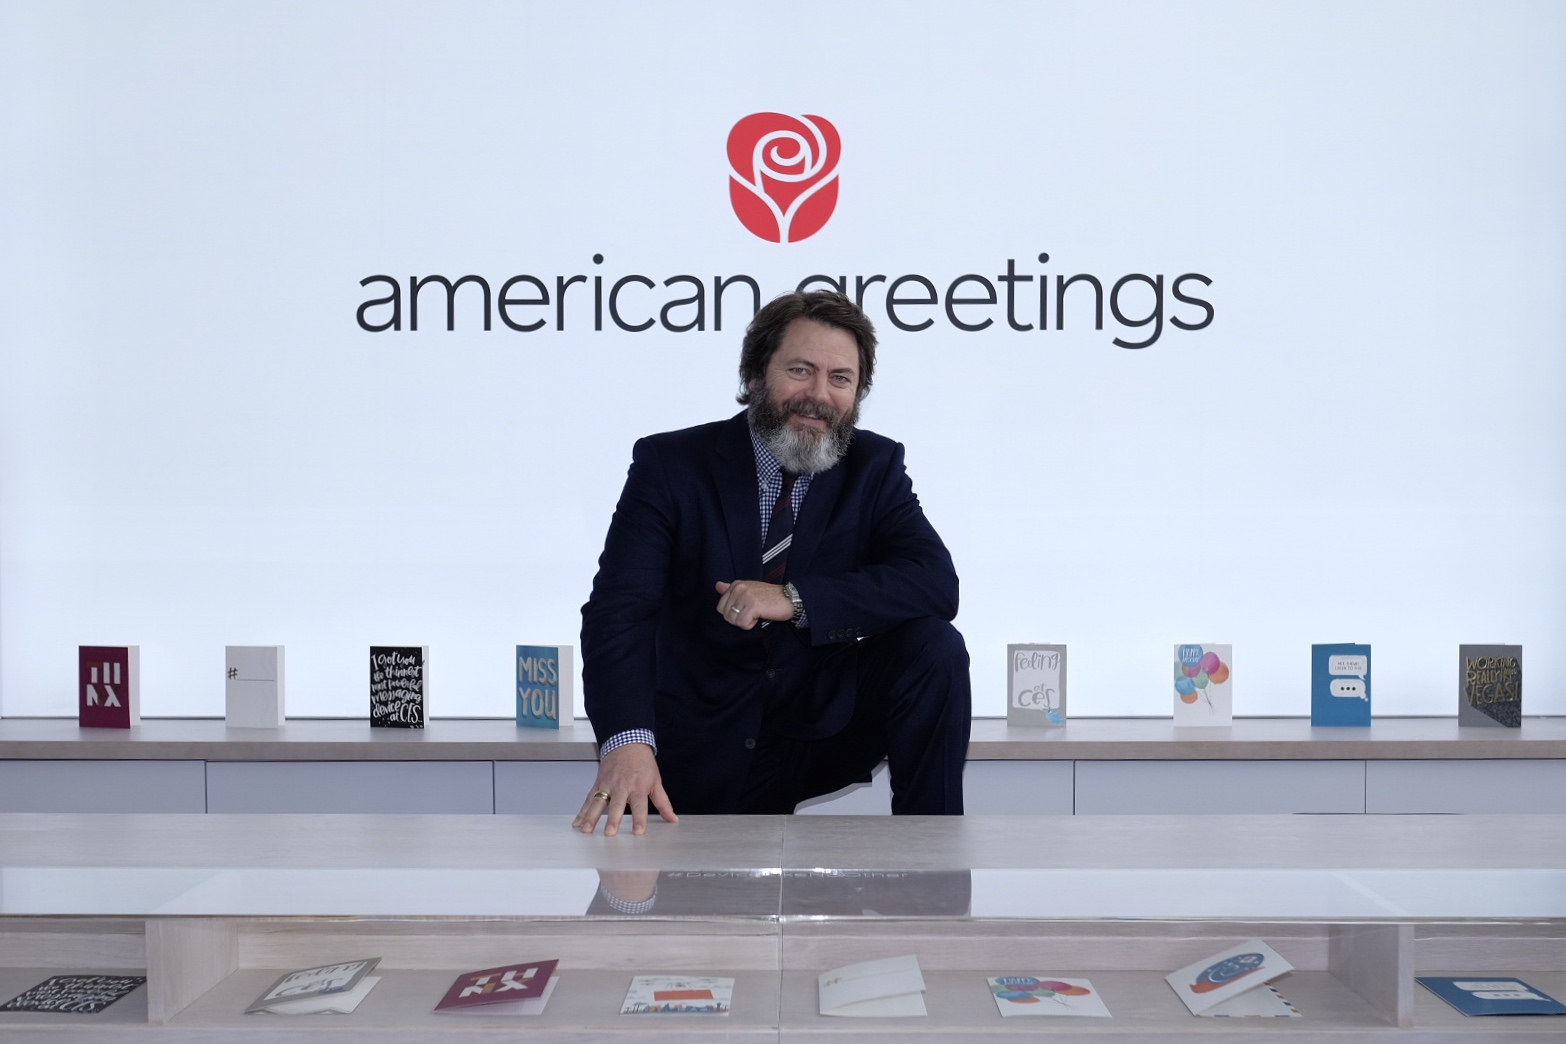 American greetings unveils a devicelikenoother at ces image available m4hsunfo